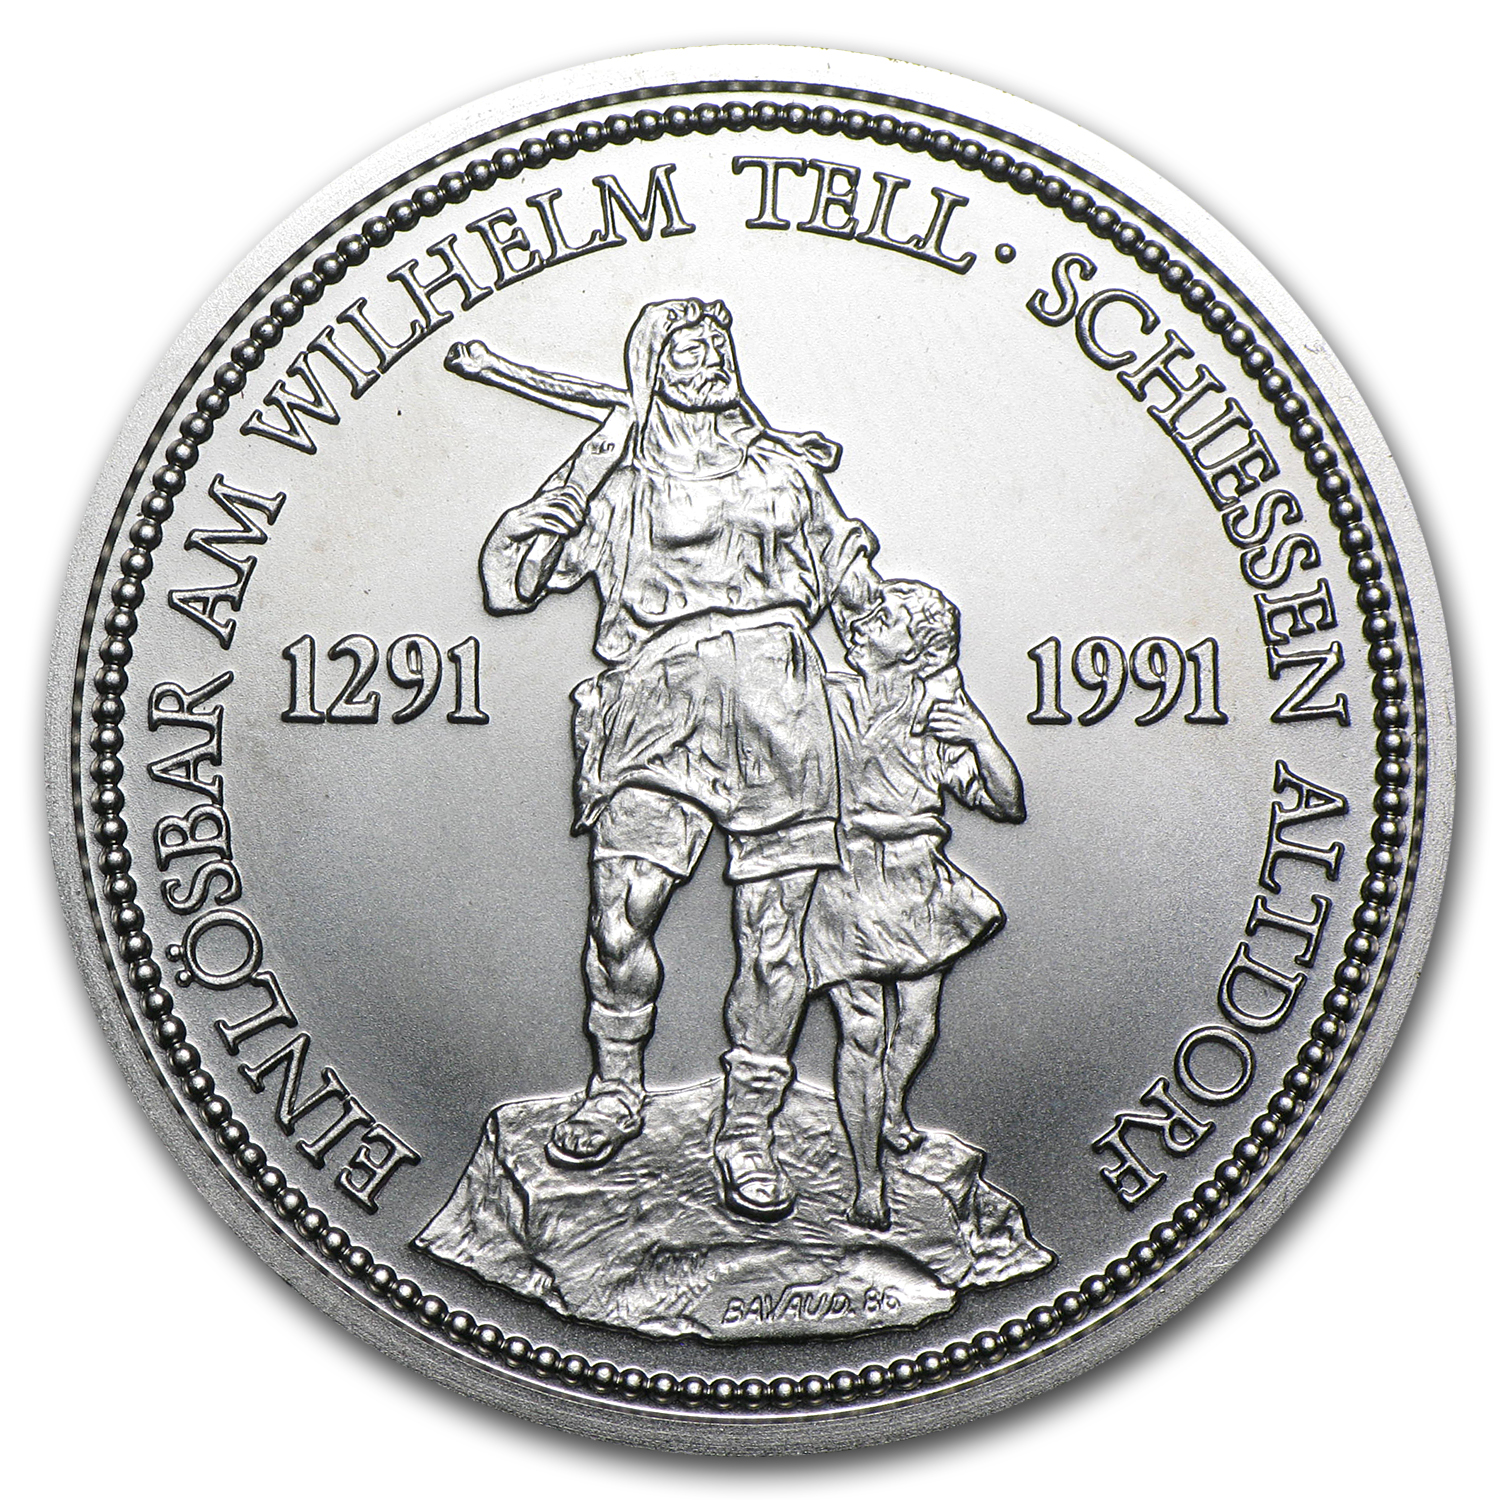 1 oz Swiss Platinum Shooting Thalers (Brilliant Uncirculated)